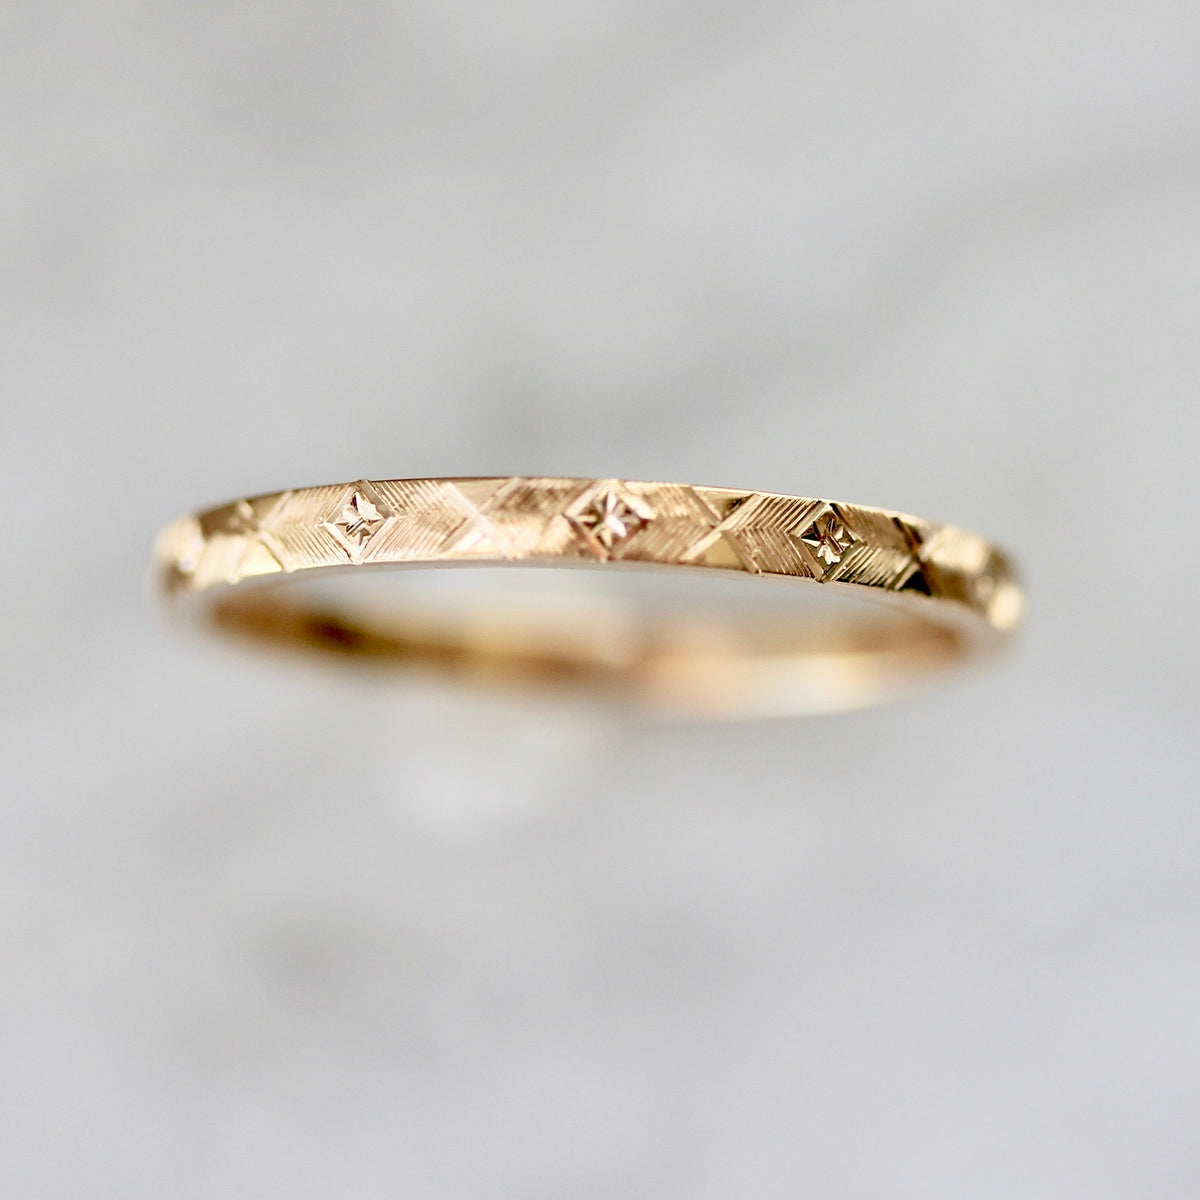 Starburst Engraved Gold Band